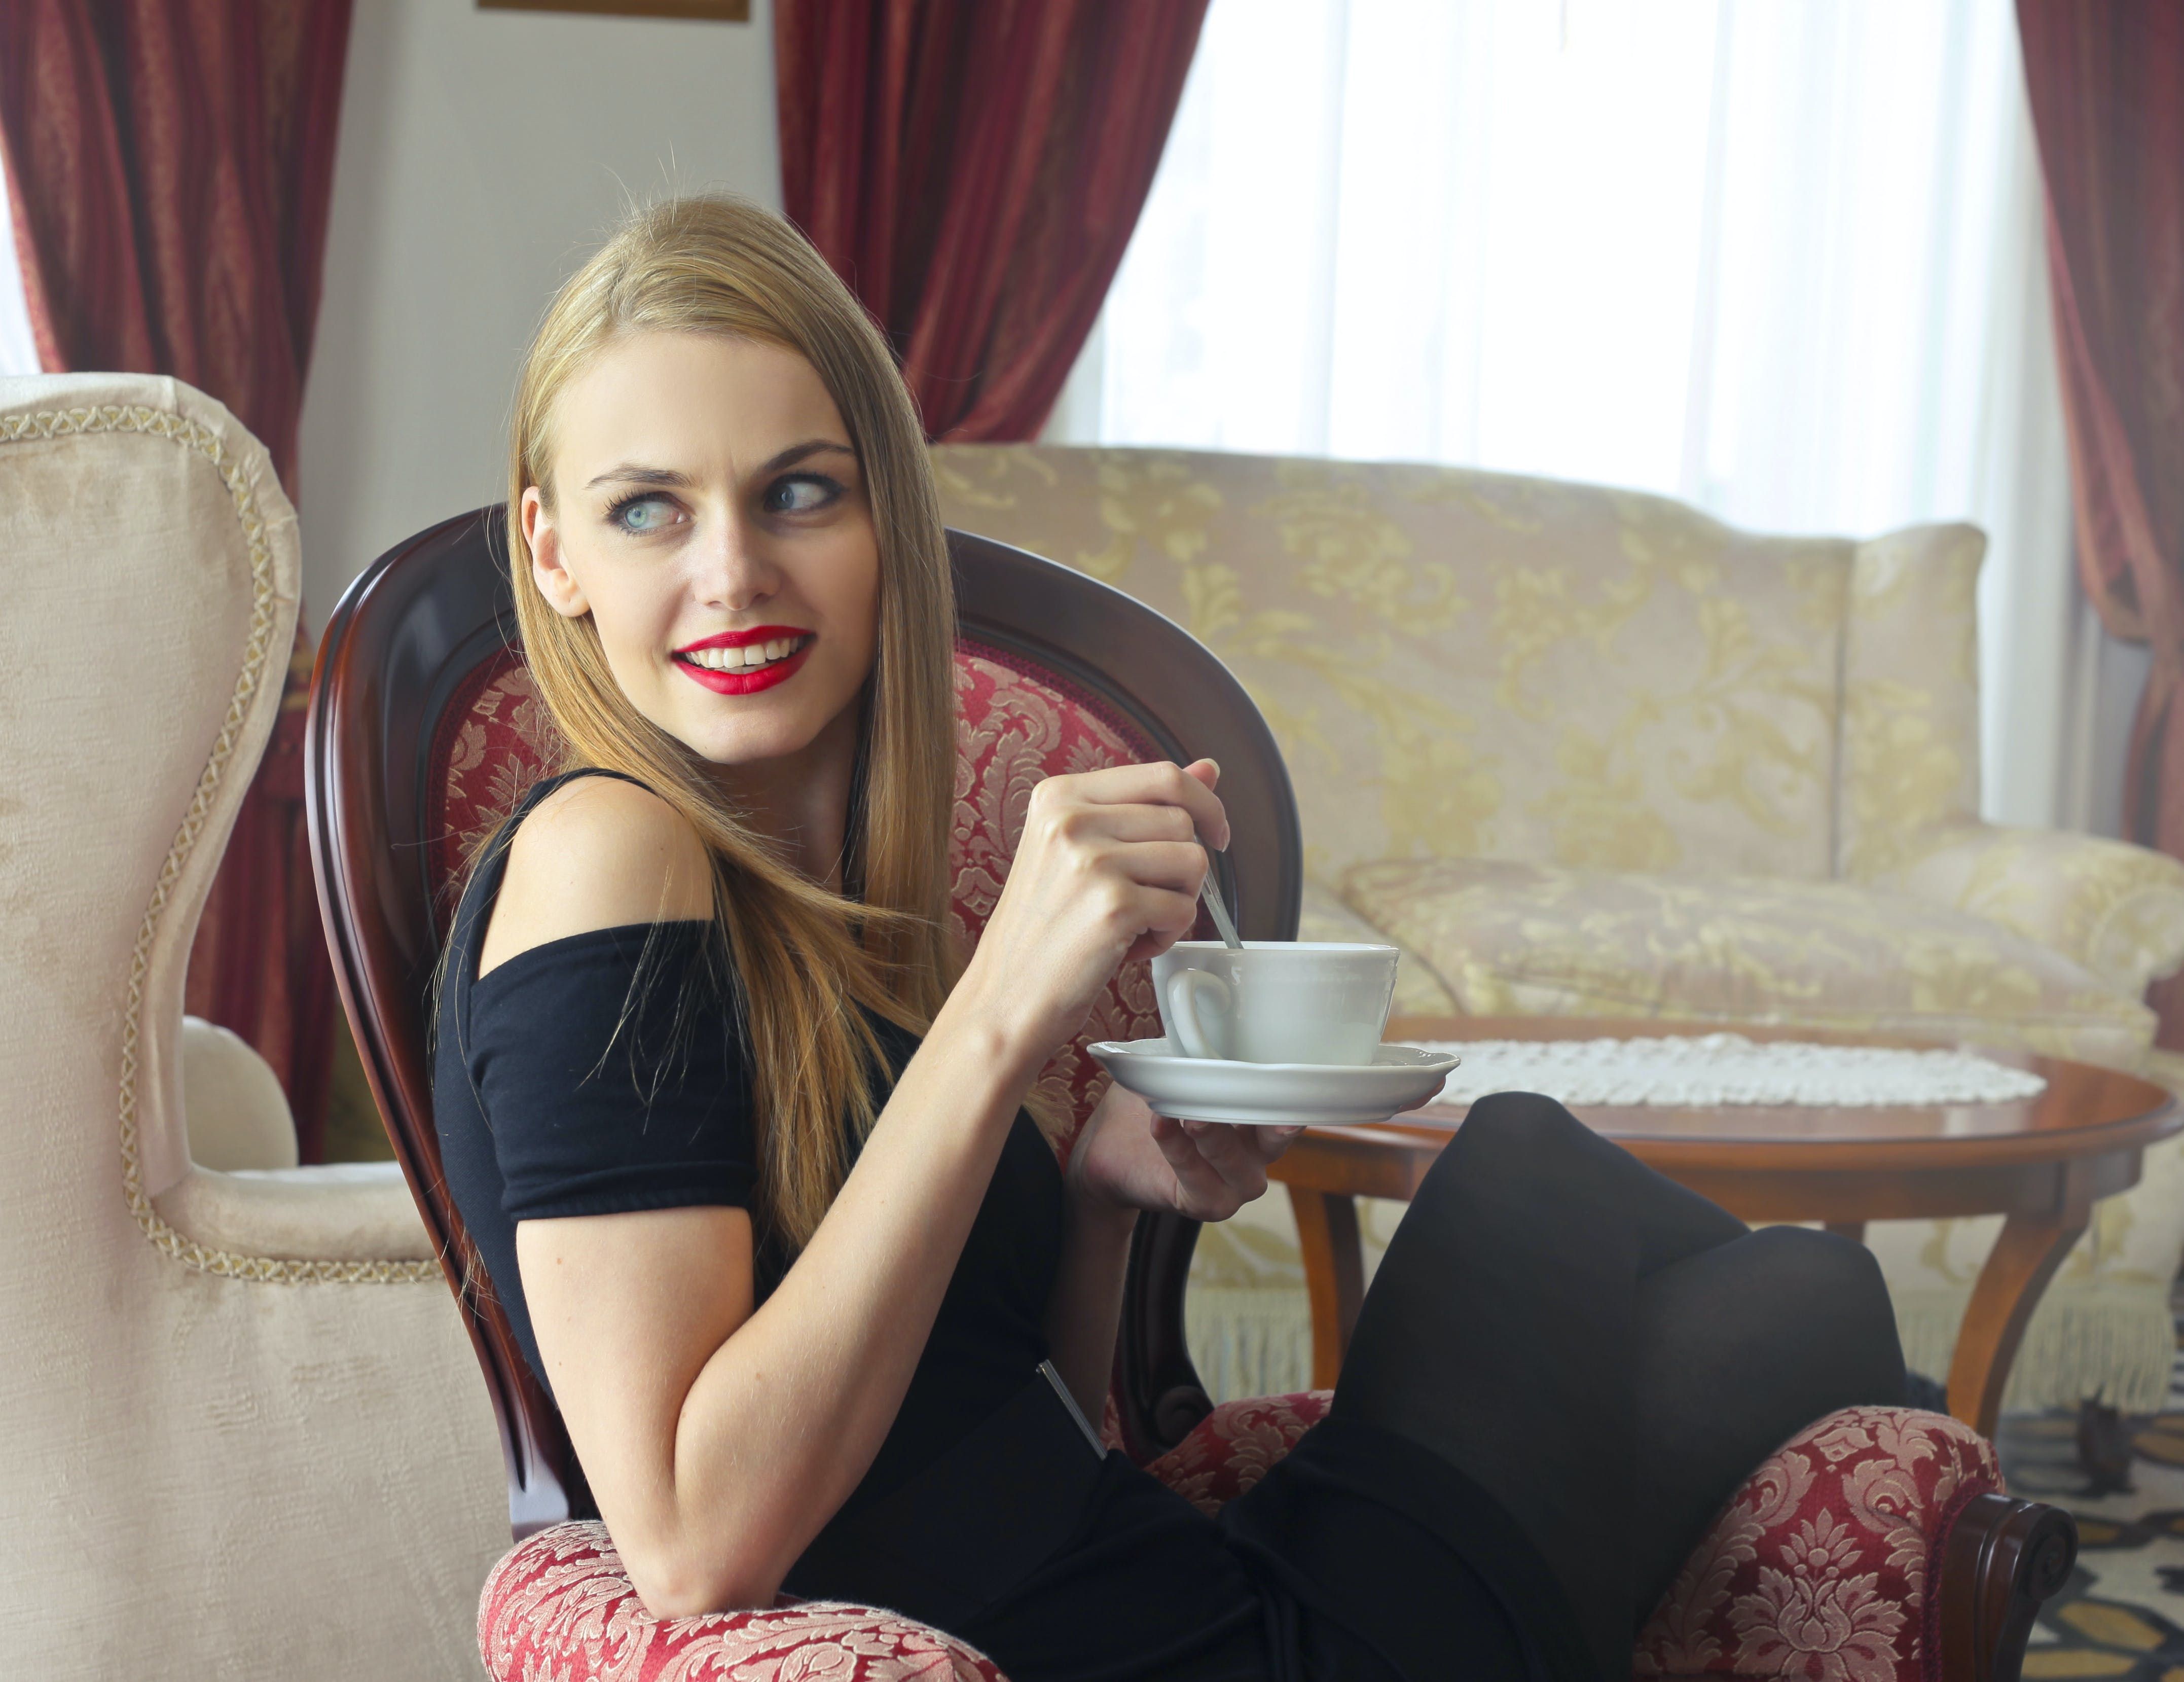 Woman in Black Cold-shoulder Dress Holding Tea Cup With Saucer